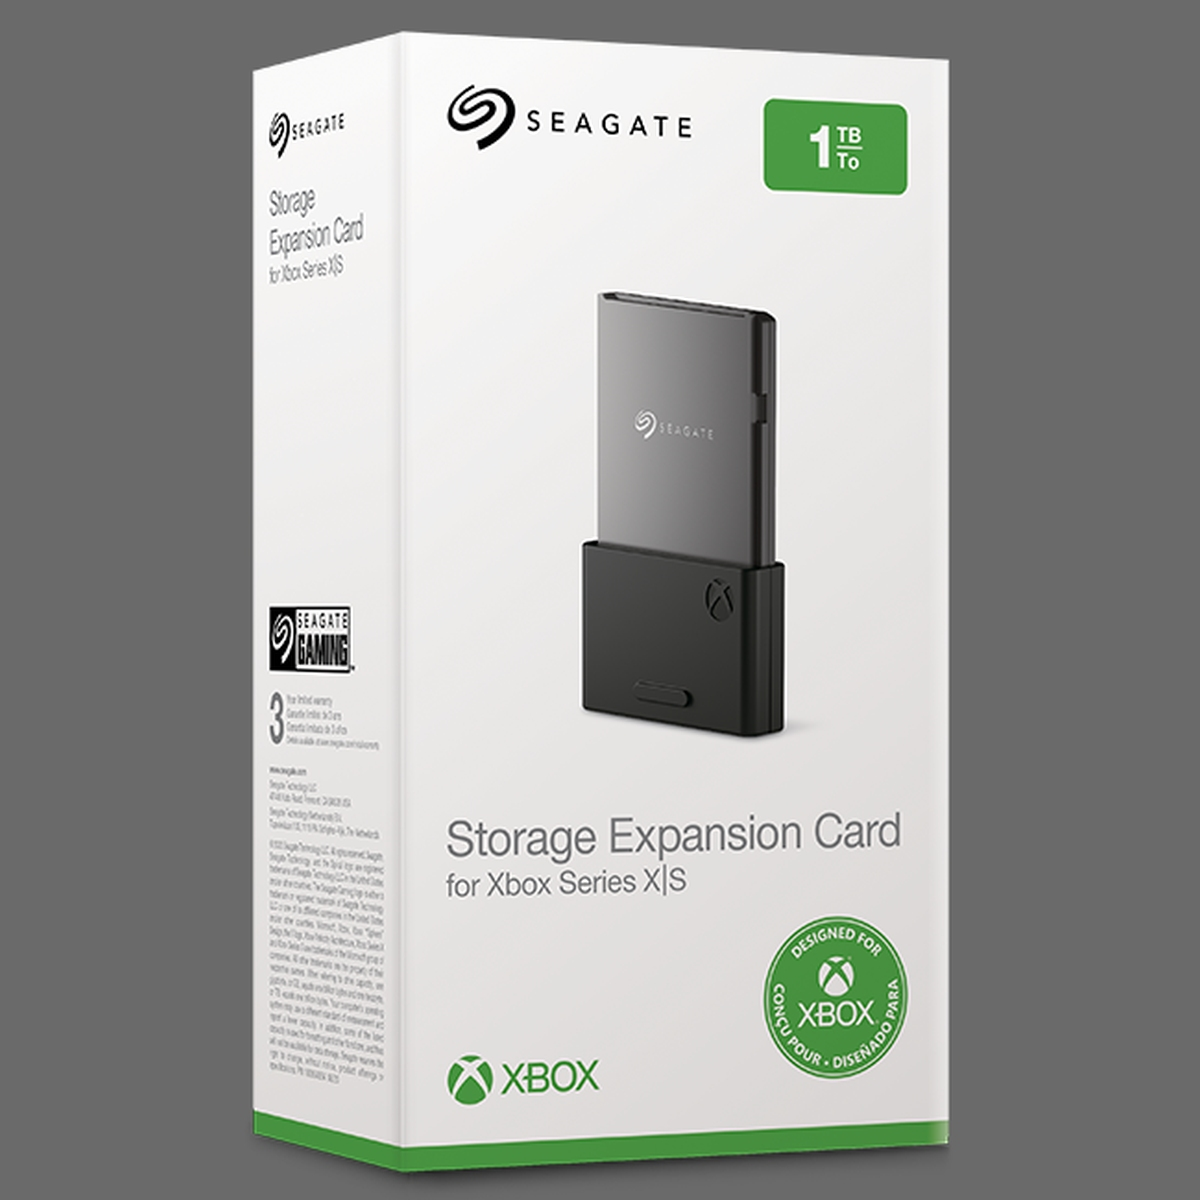 Seagate Storage Expansion Card do Xbox Series X|S